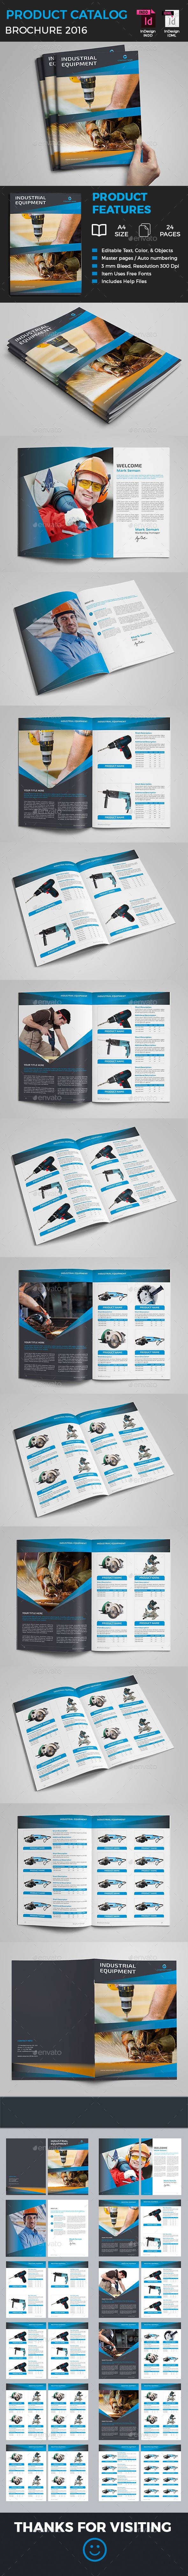 Product Catalog  - InDesign Template • Only available here ➝ http://graphicriver.net/item/product-catalog/16870202?ref=pxcr